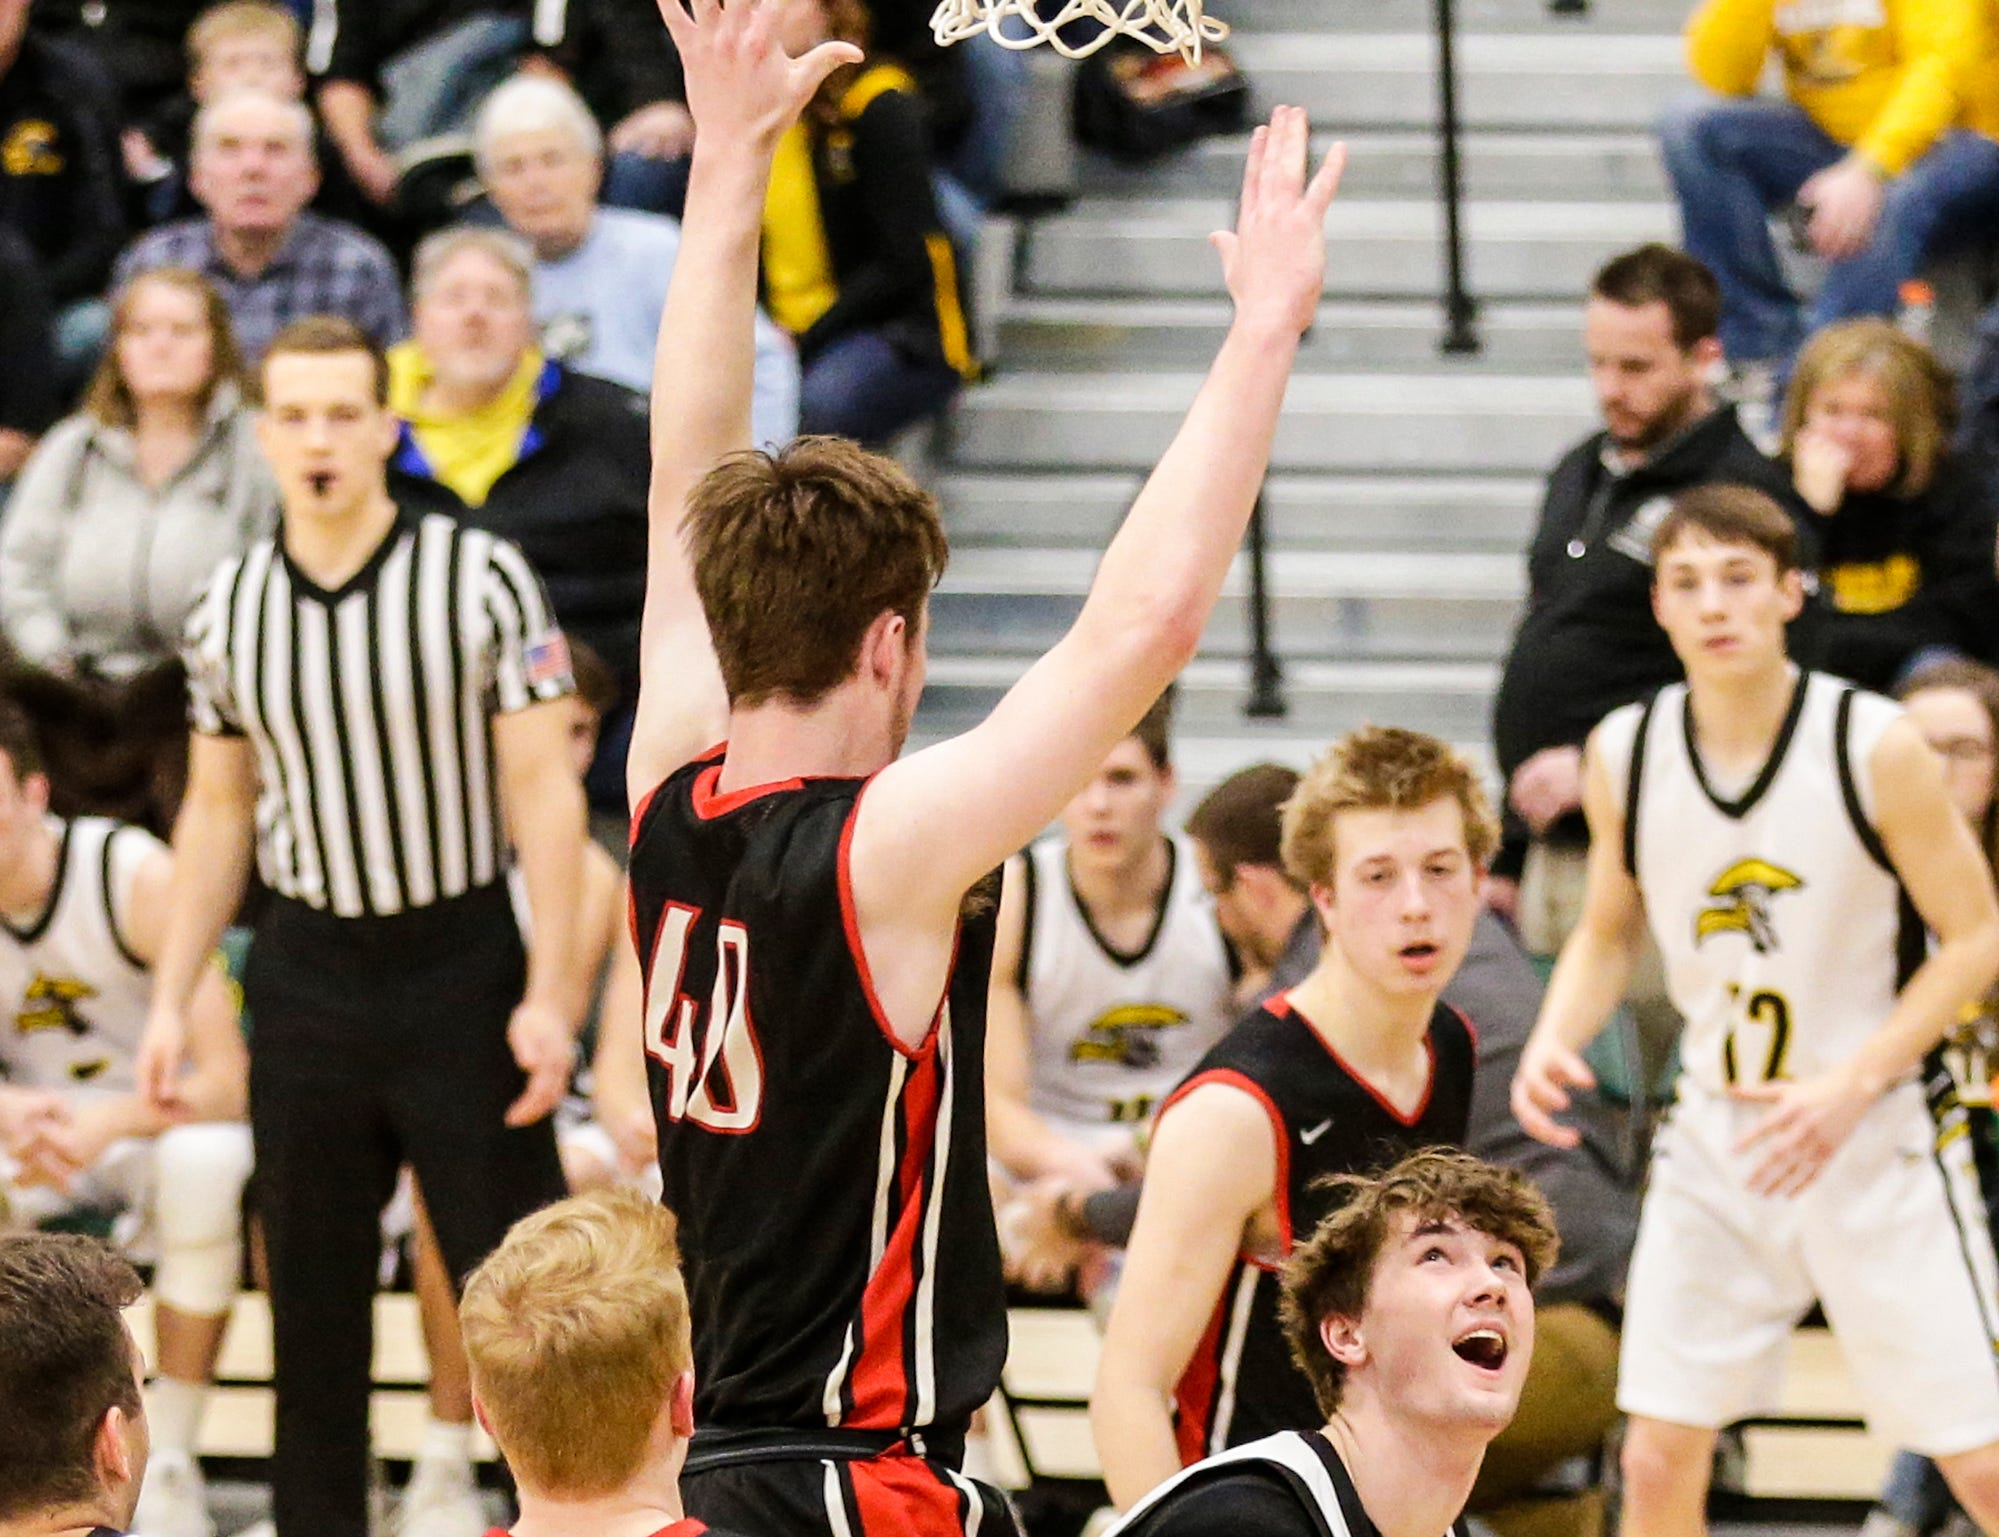 Waupun High School boys basketball's Reece Homan (23) eyes up the basket under Columbus High School's Ben Emler (40) during their WIAA division 3 sectional semi-final game Thursday, March 7, 2019 in Beaver Dam, Wis. Waupun won the game 79-36. Doug Raflik/USA TODAY NETWORK-Wisconsin